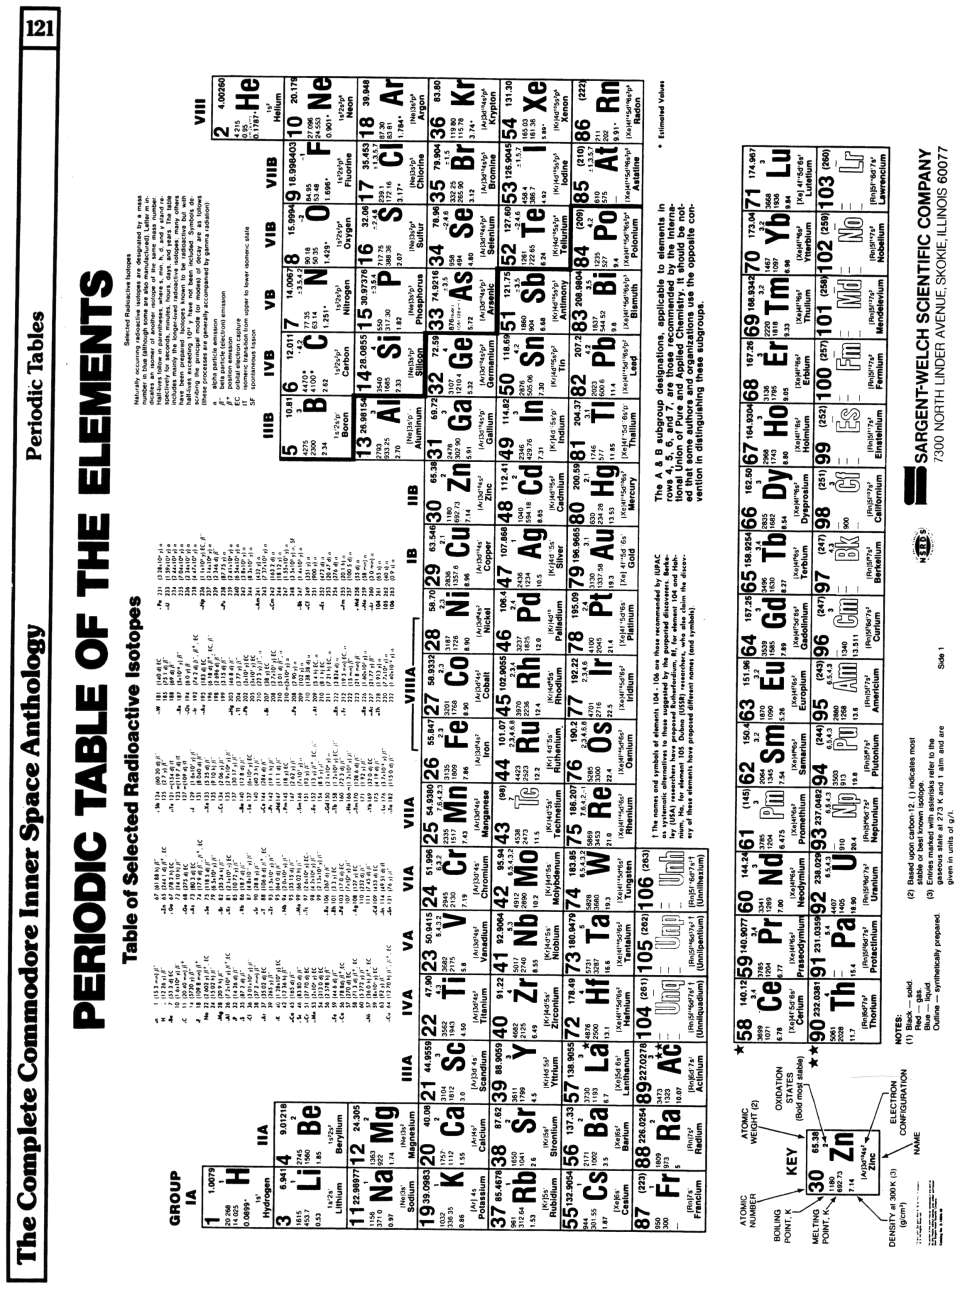 [960�1293 Arithmetic and Mathematics: Periodic Table of The Elements (1 of 2)]